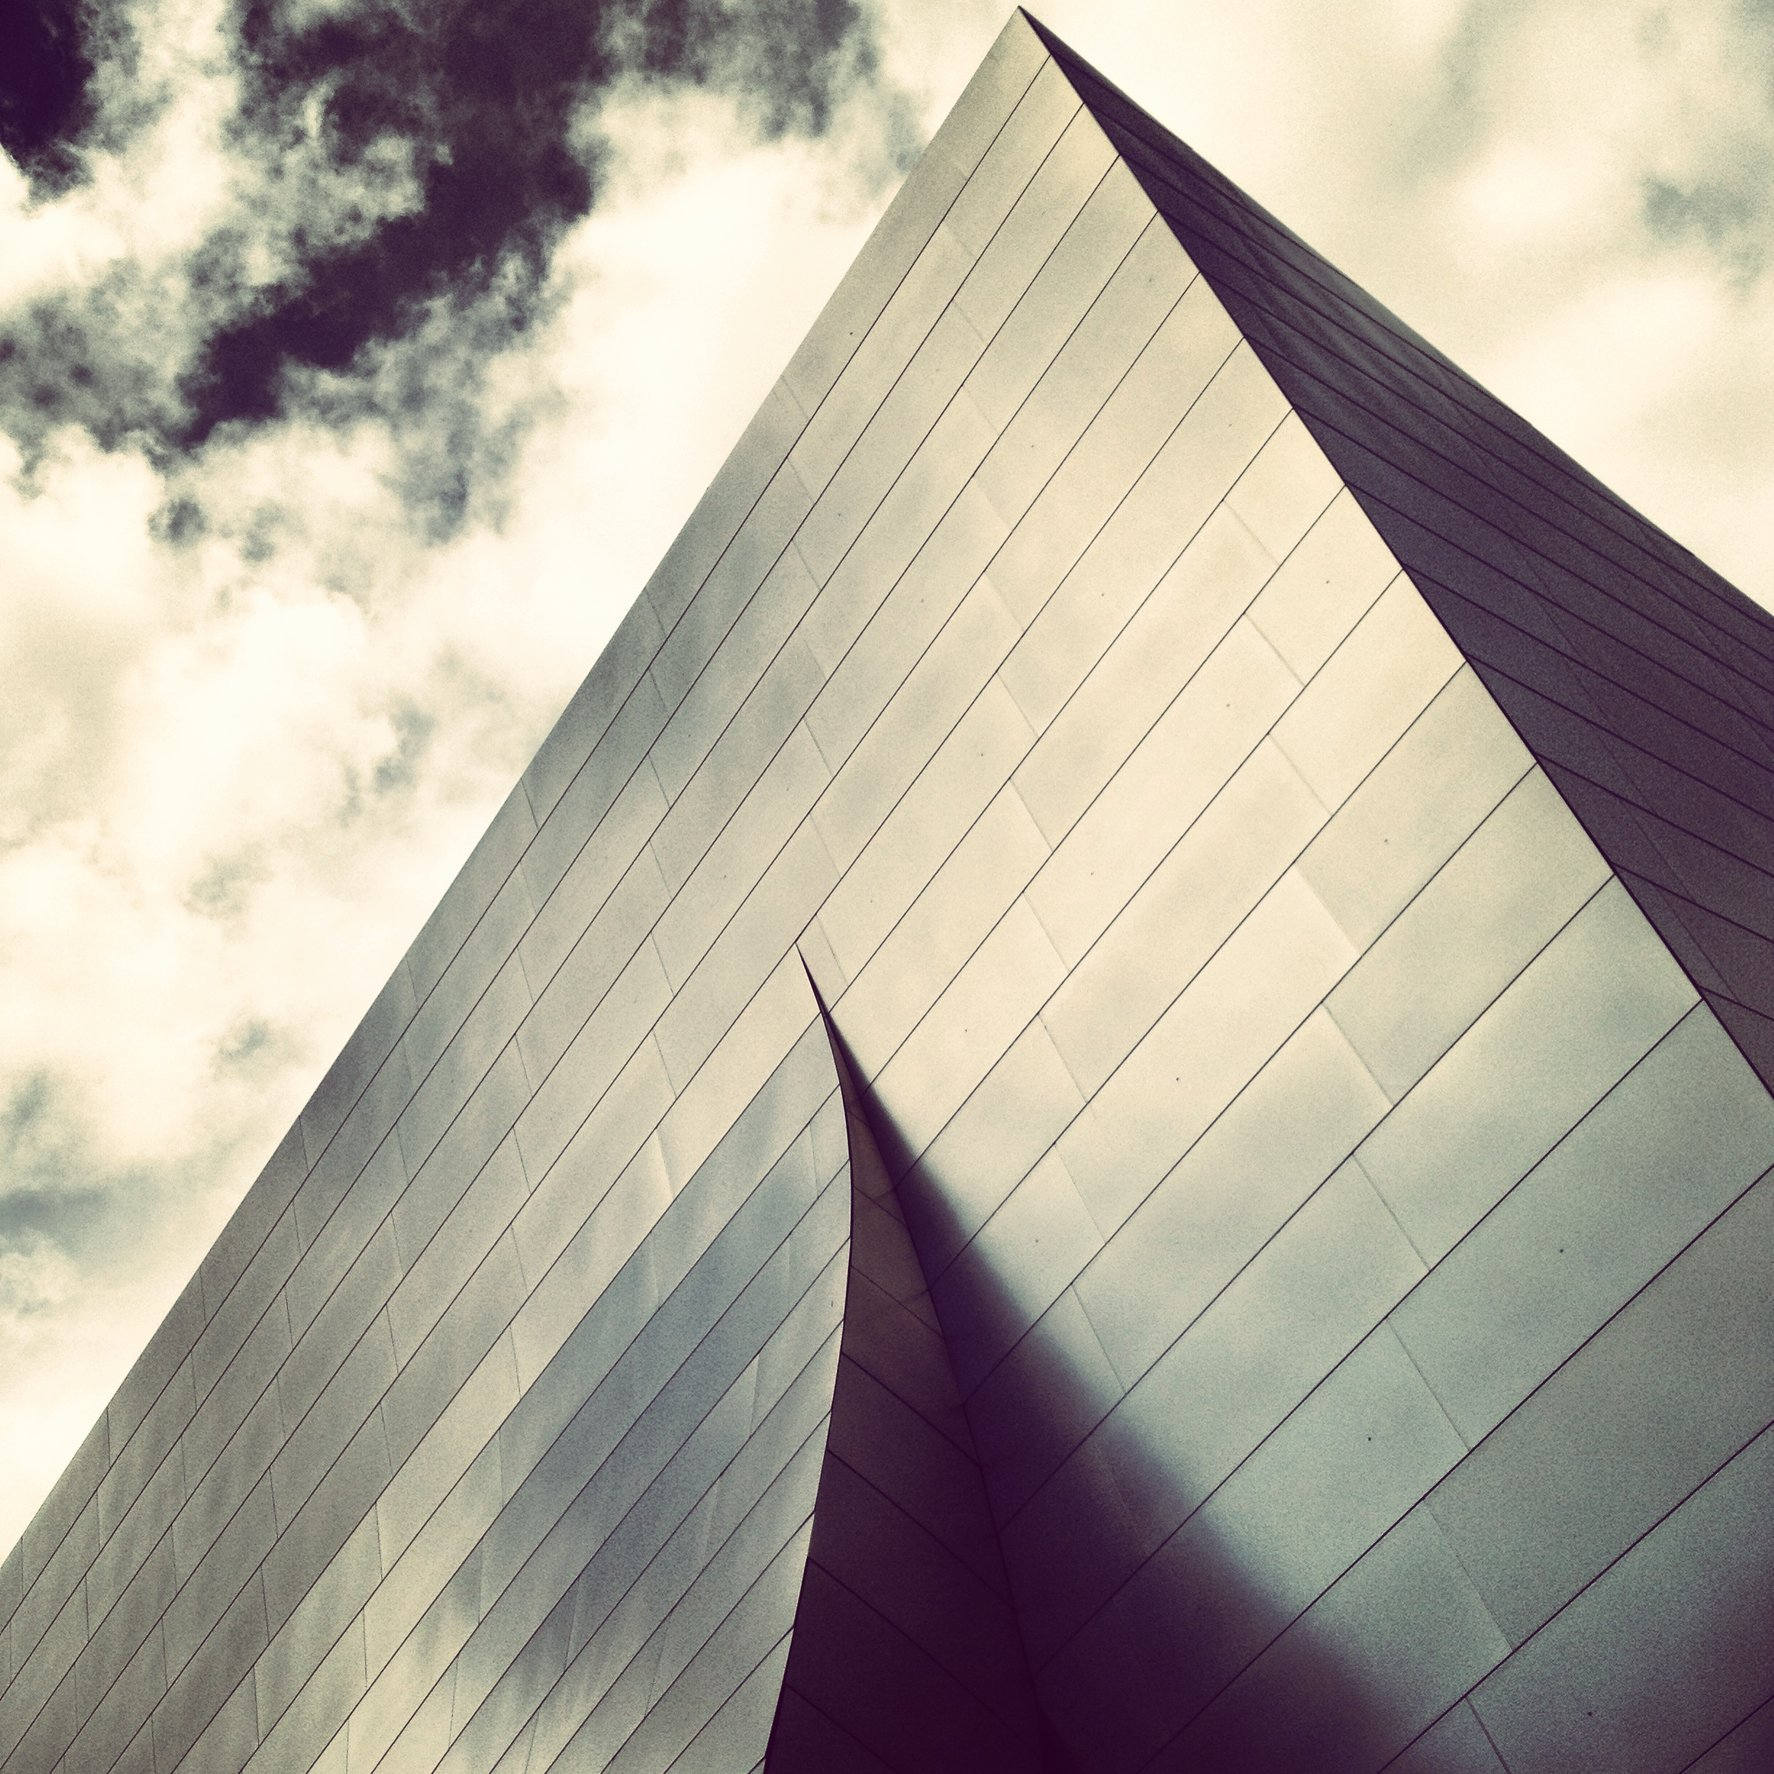 WALT DISNEY CONCERT HALL - B&W 9